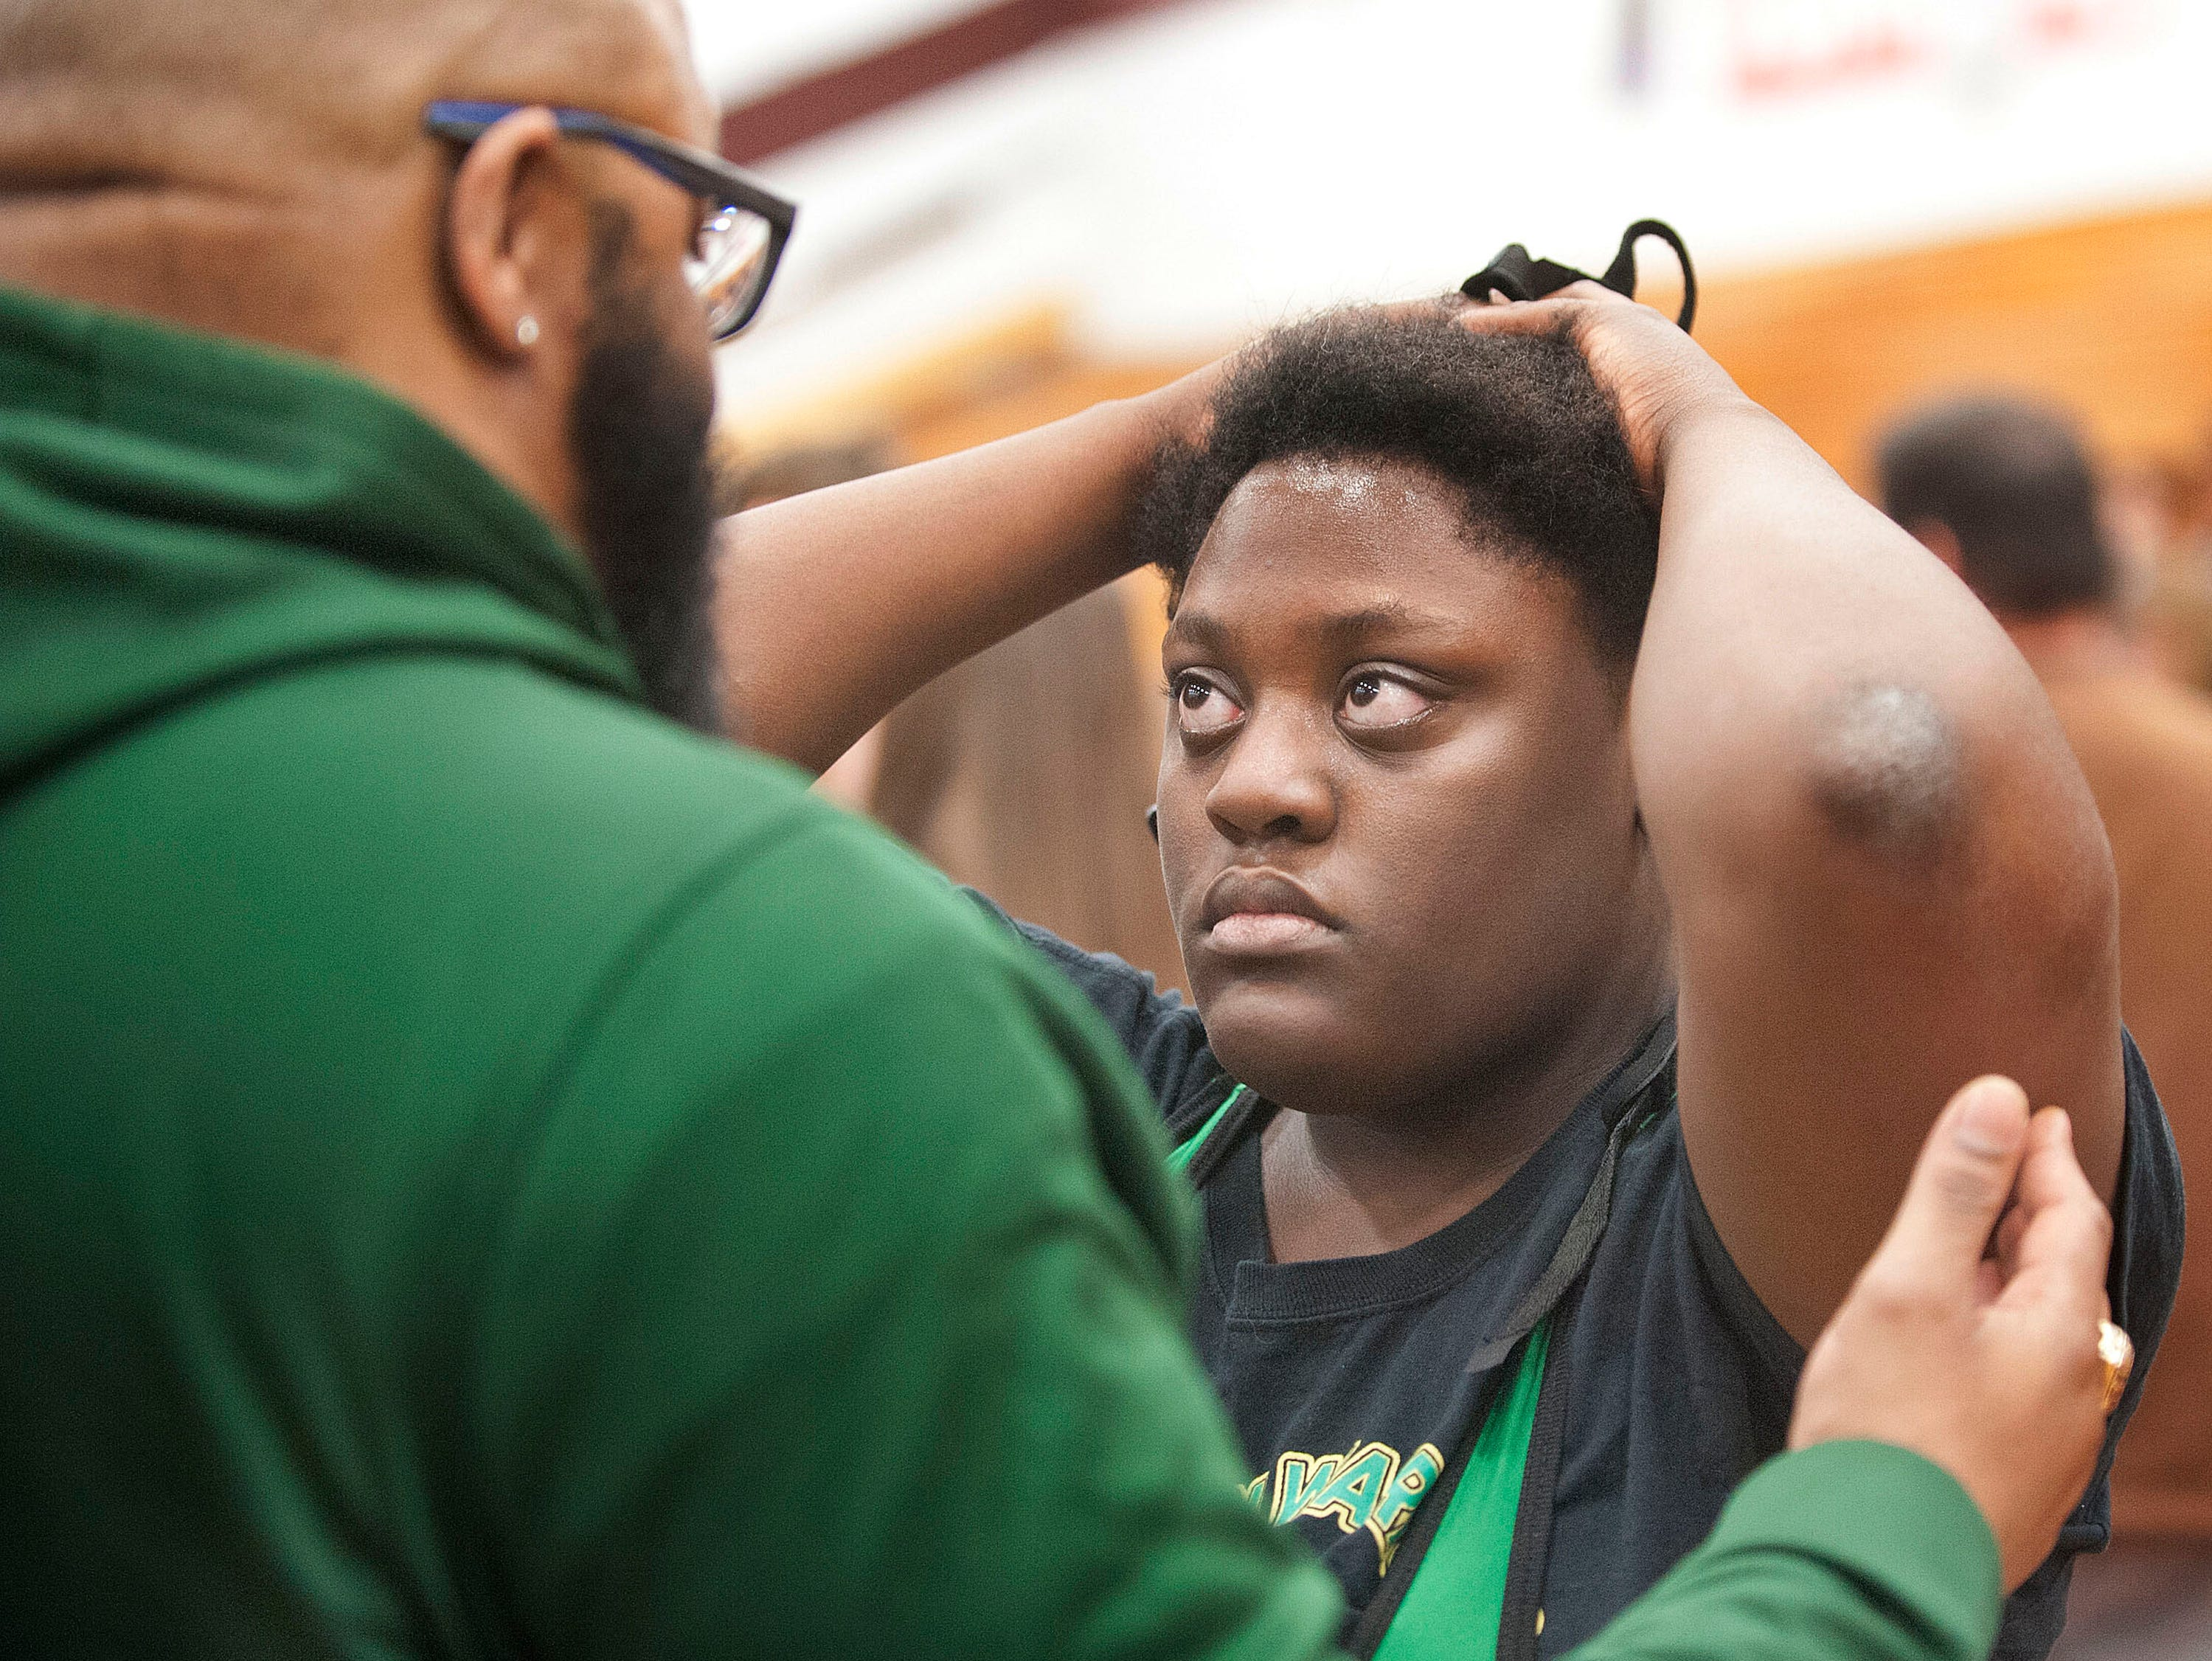 After the contest, Lokey listens, as Western wrestling assistant coach Torrey Shinholster explains some of the mistakes she made during the match.09 February 2019